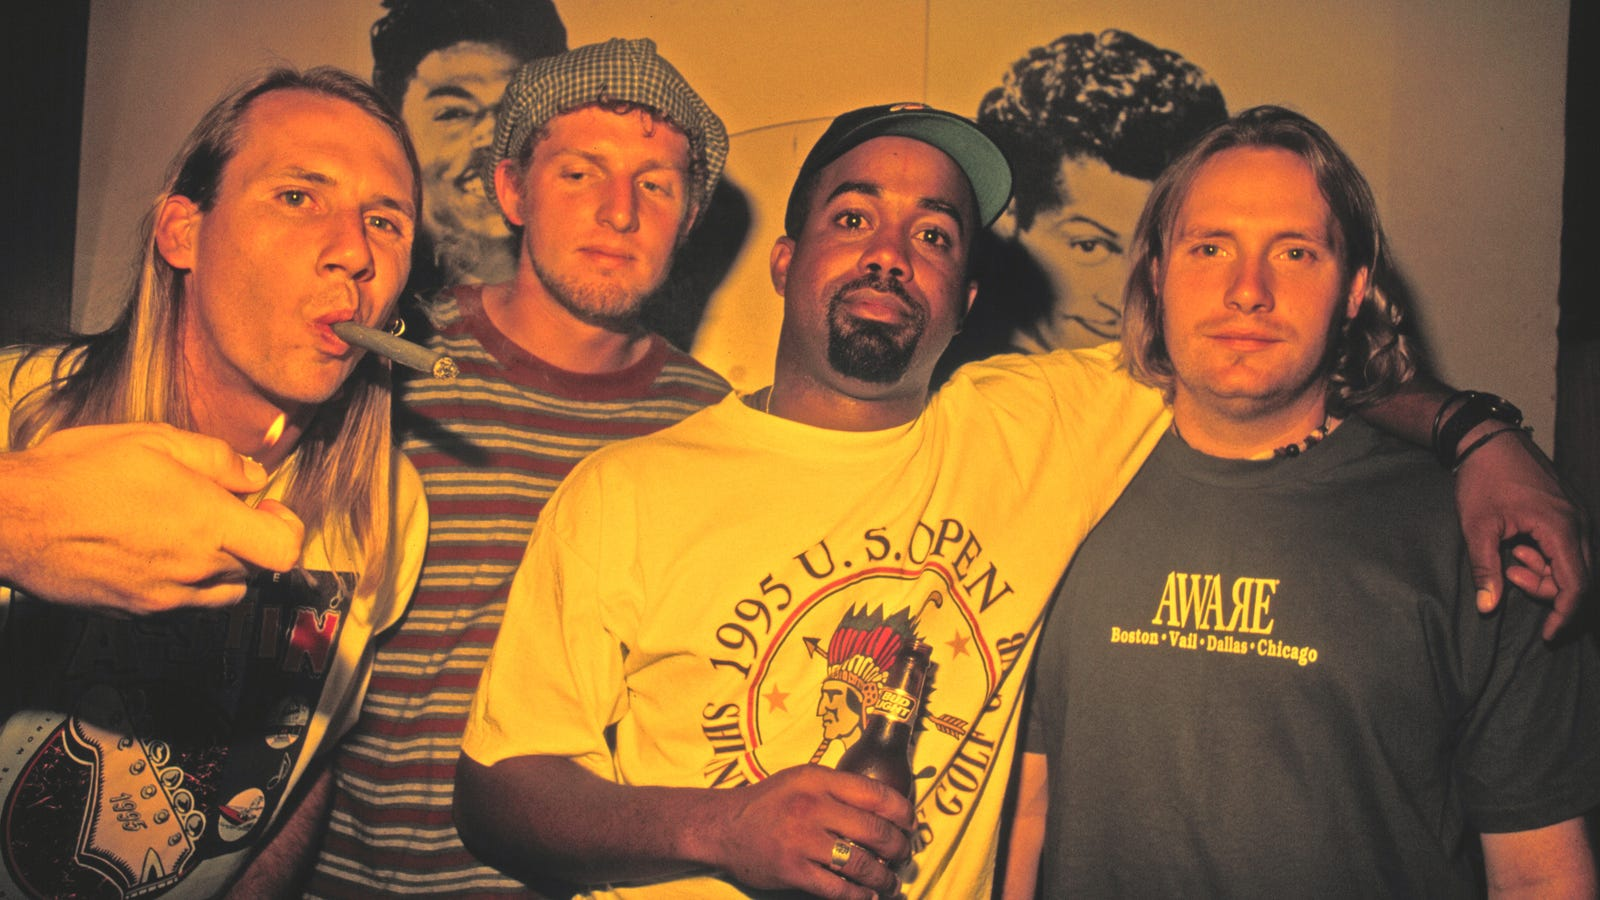 Unleash the cargo shorts: Hootie & The Blowfish are back next year with a new album and tour